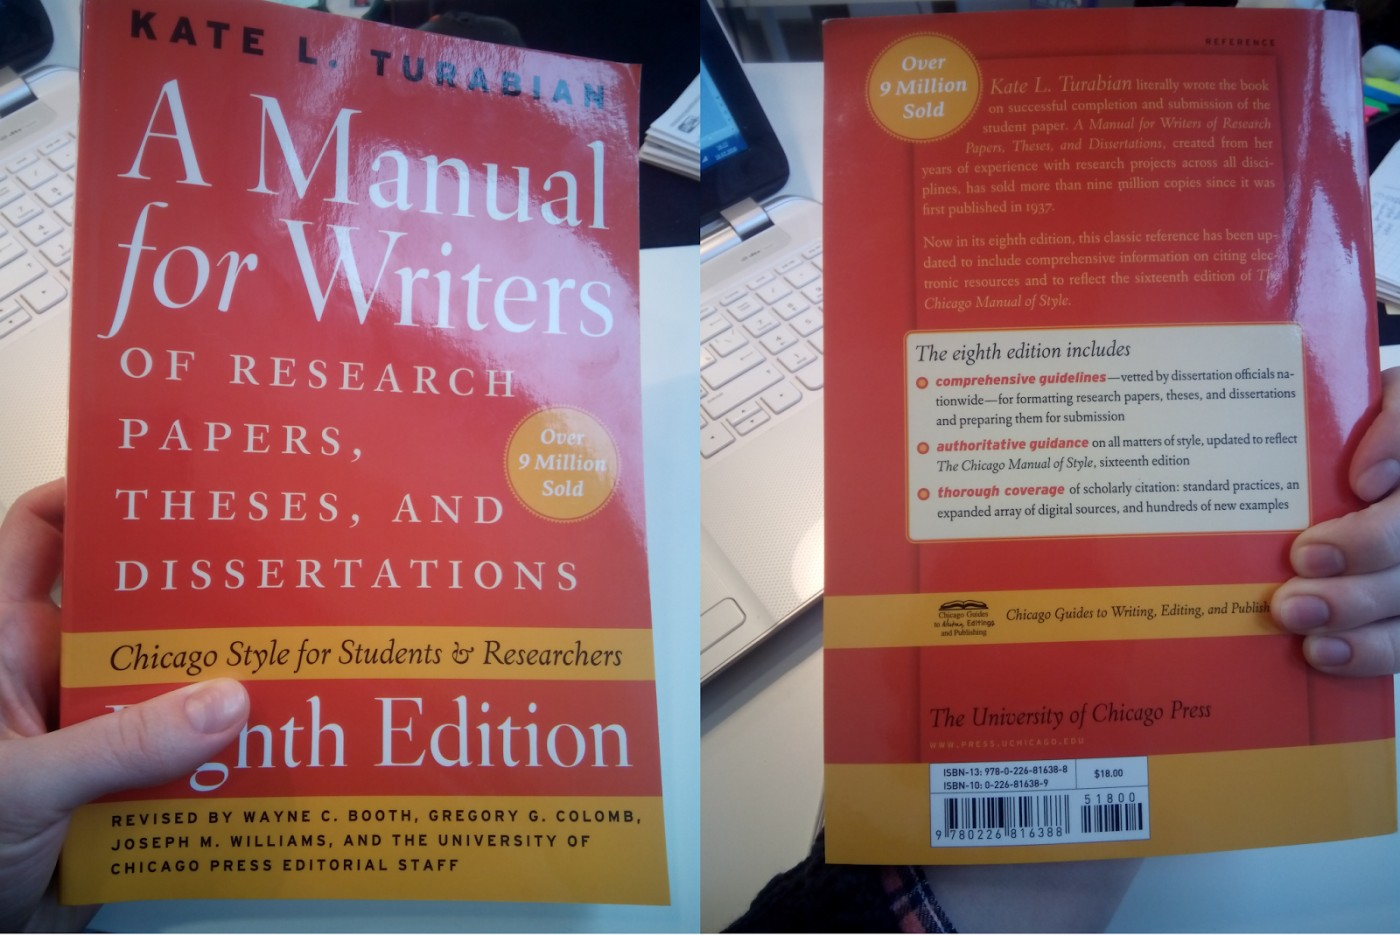 019 Manual For Writers Of Research Papers Theses And Dissertations Paper Magnificent A Amazon 9th Edition 8th 13 1400